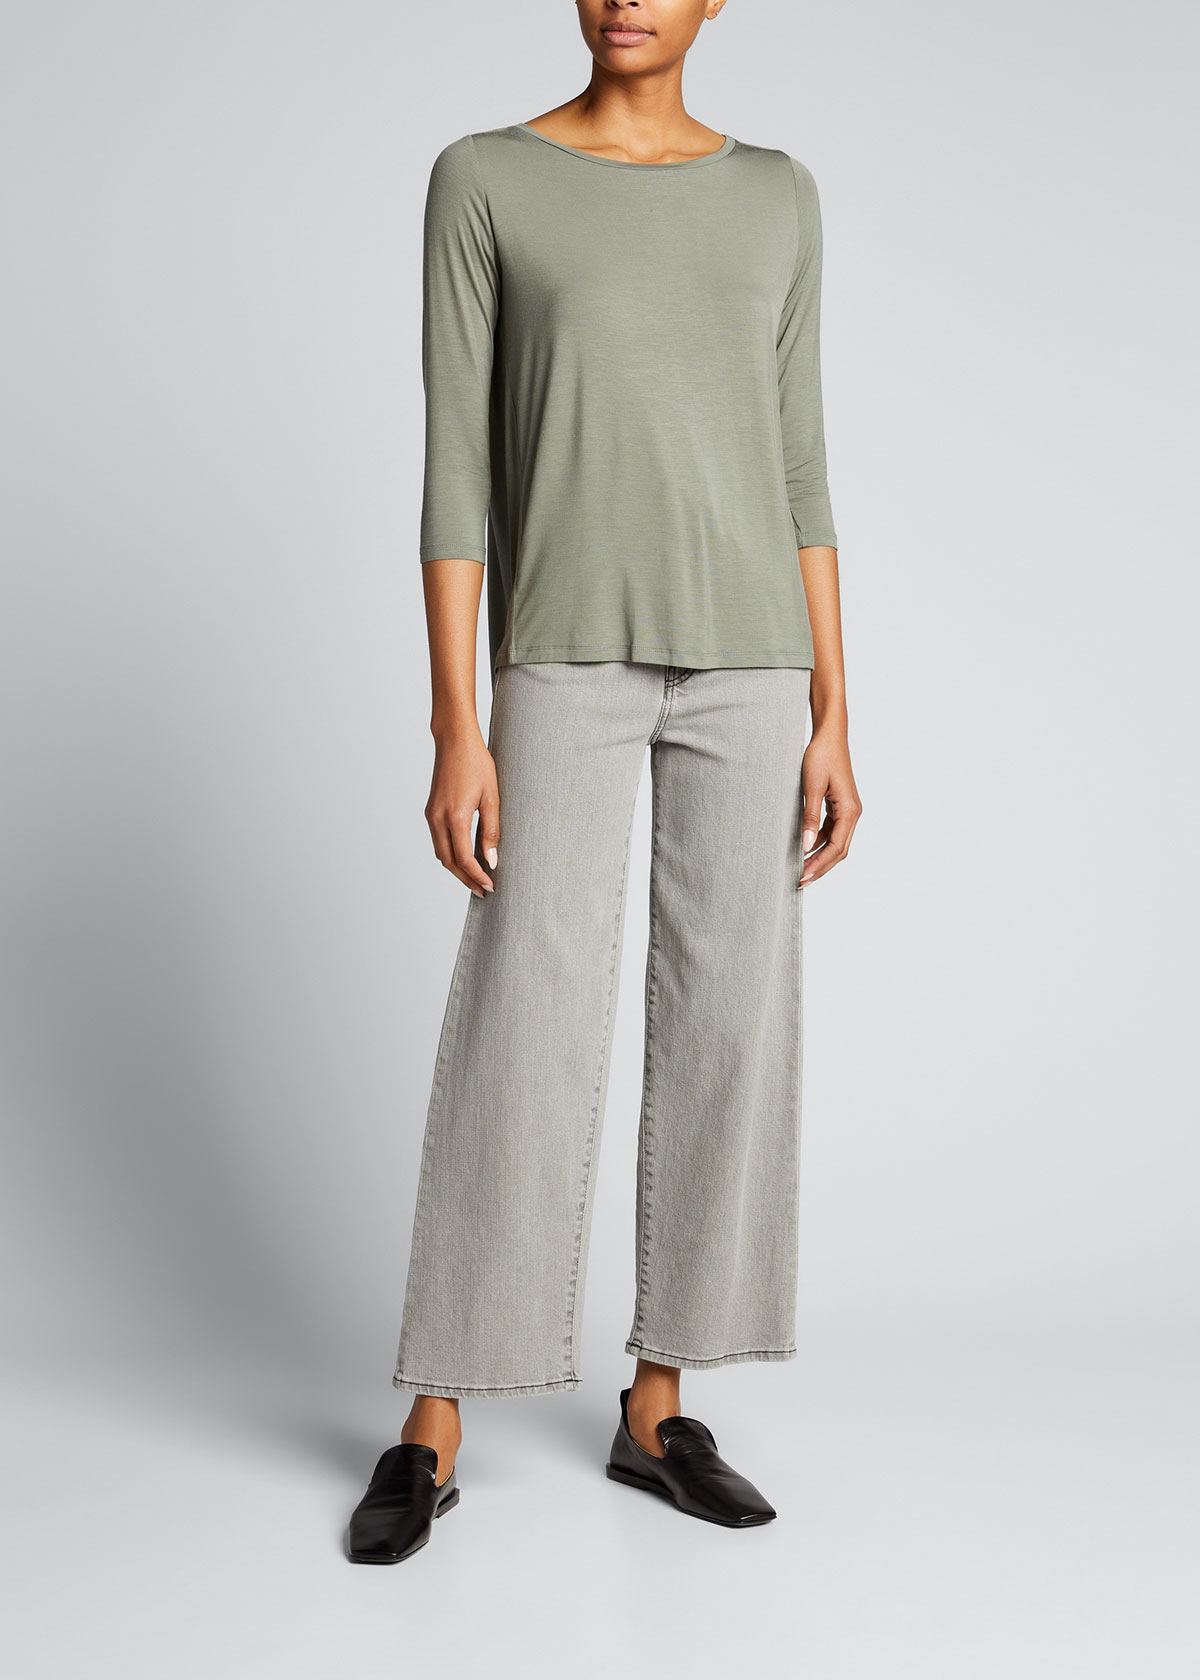 Majestic STRETCH VISCOSE RELAXED 3/4-SLEEVE TOP